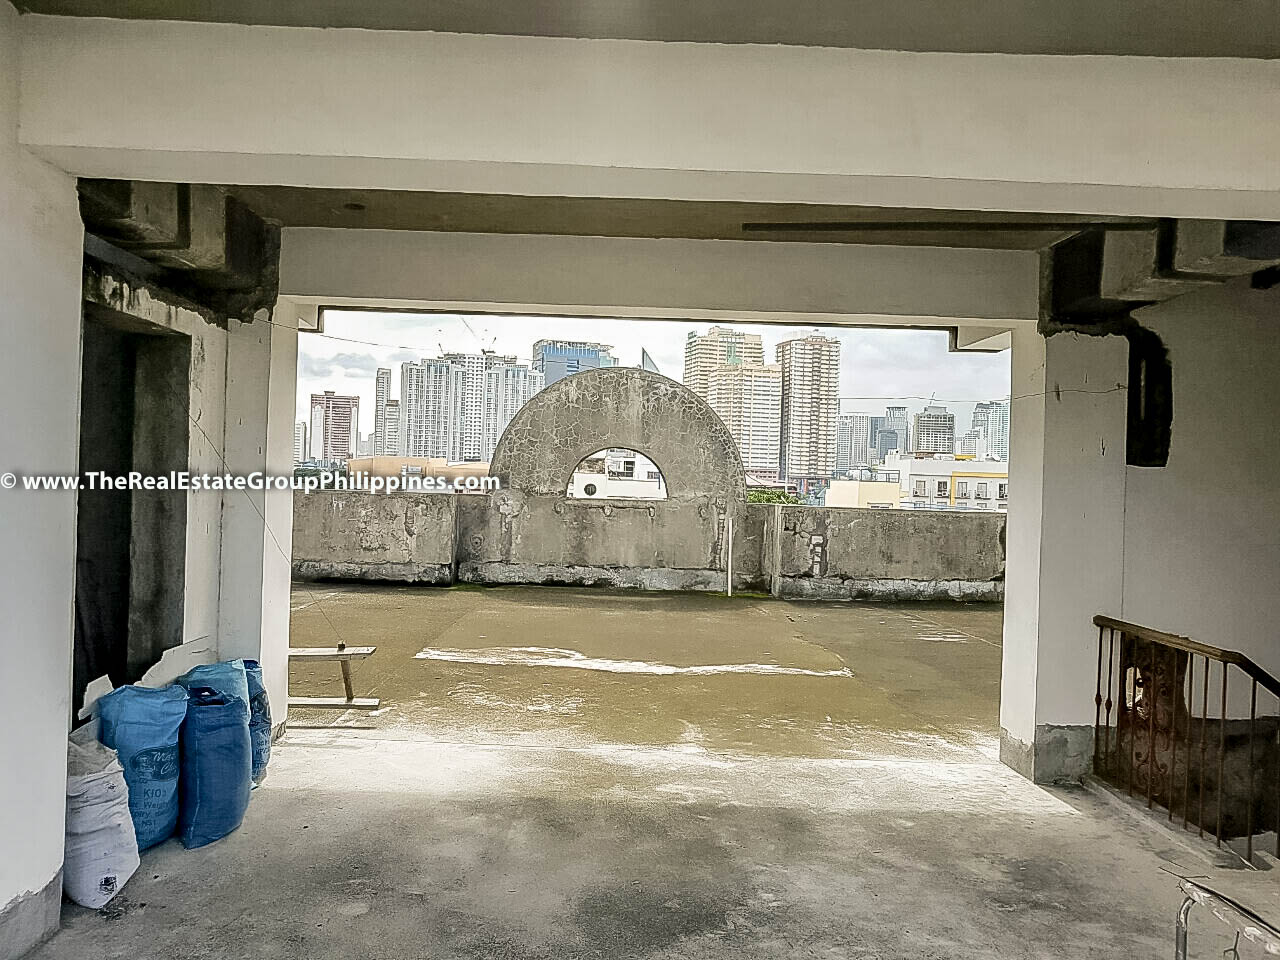 1,260 Sqm, 5-Storey Residential Building For Sale, Makati City Rooftop